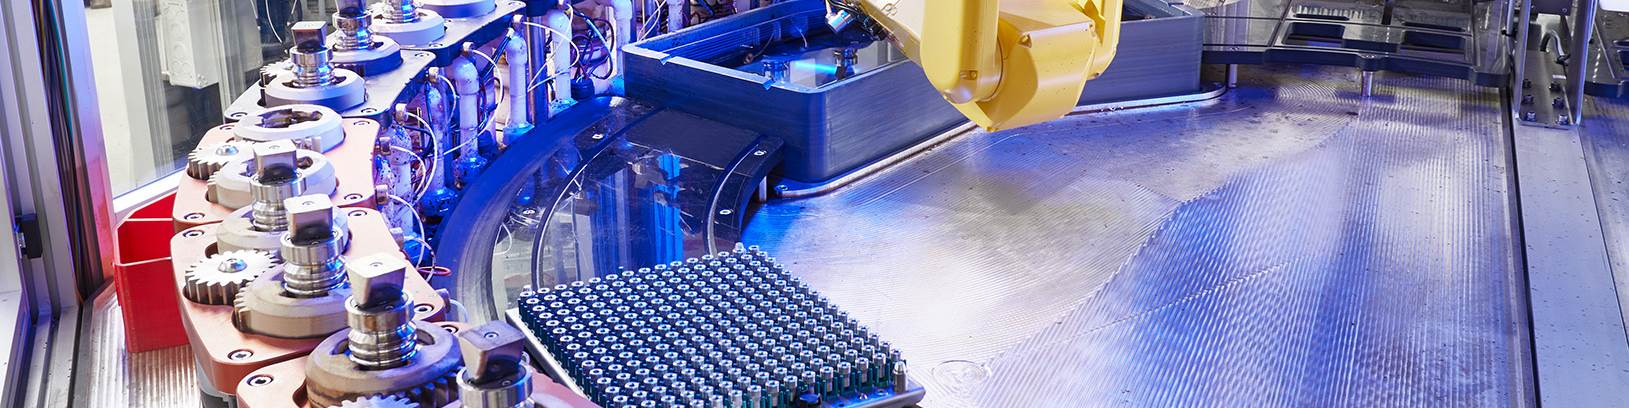 German Finishing Company Releases New Plating Technology